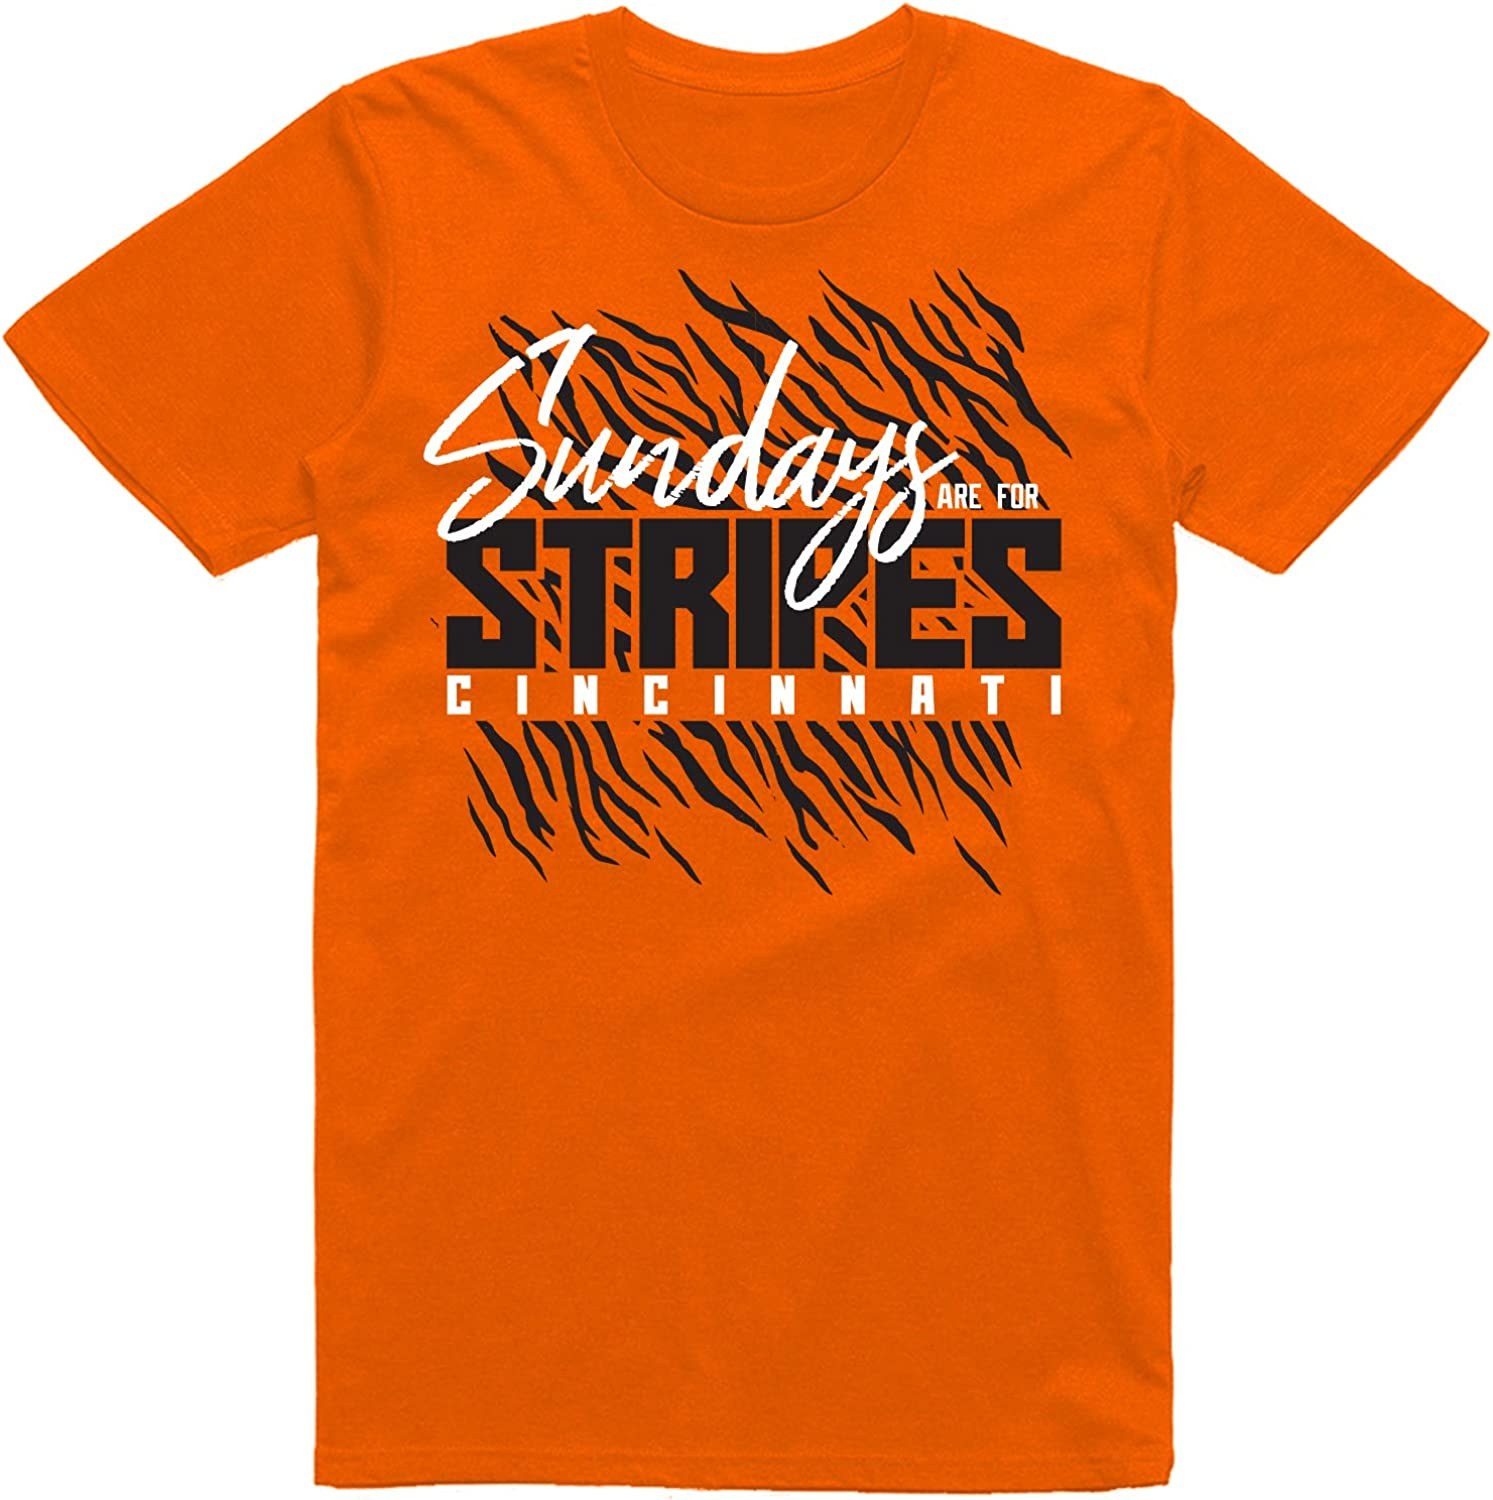 INKpressionists Sundays are for Football Limited price sale Stripes Cincinnati Max 73% OFF Fans